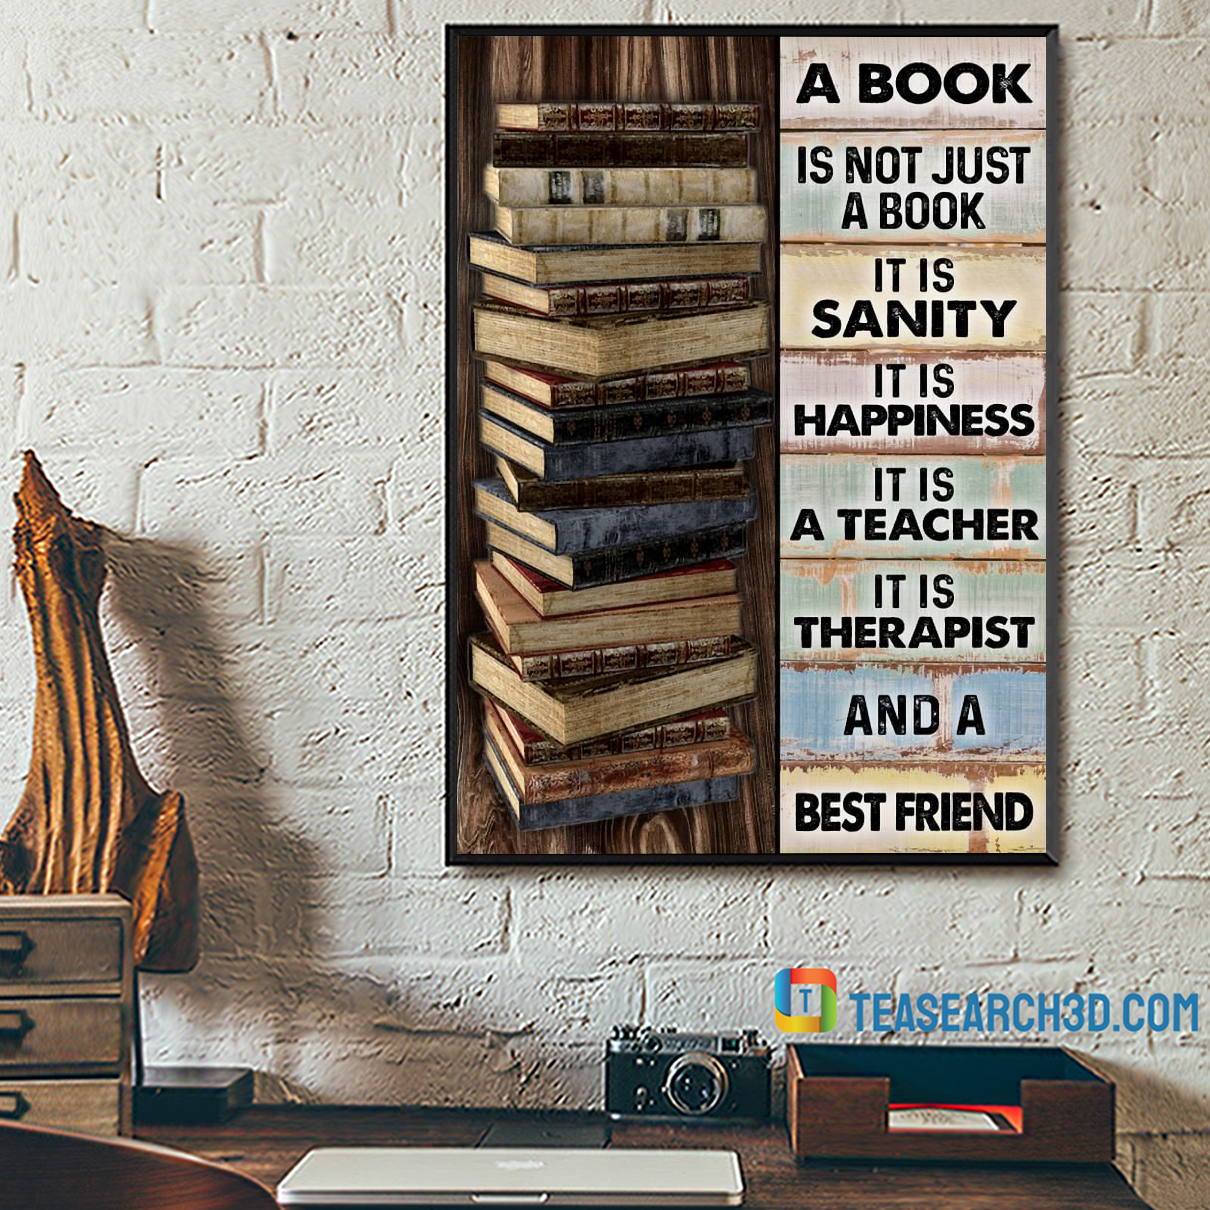 A book is not just a book it is sanity poster A2